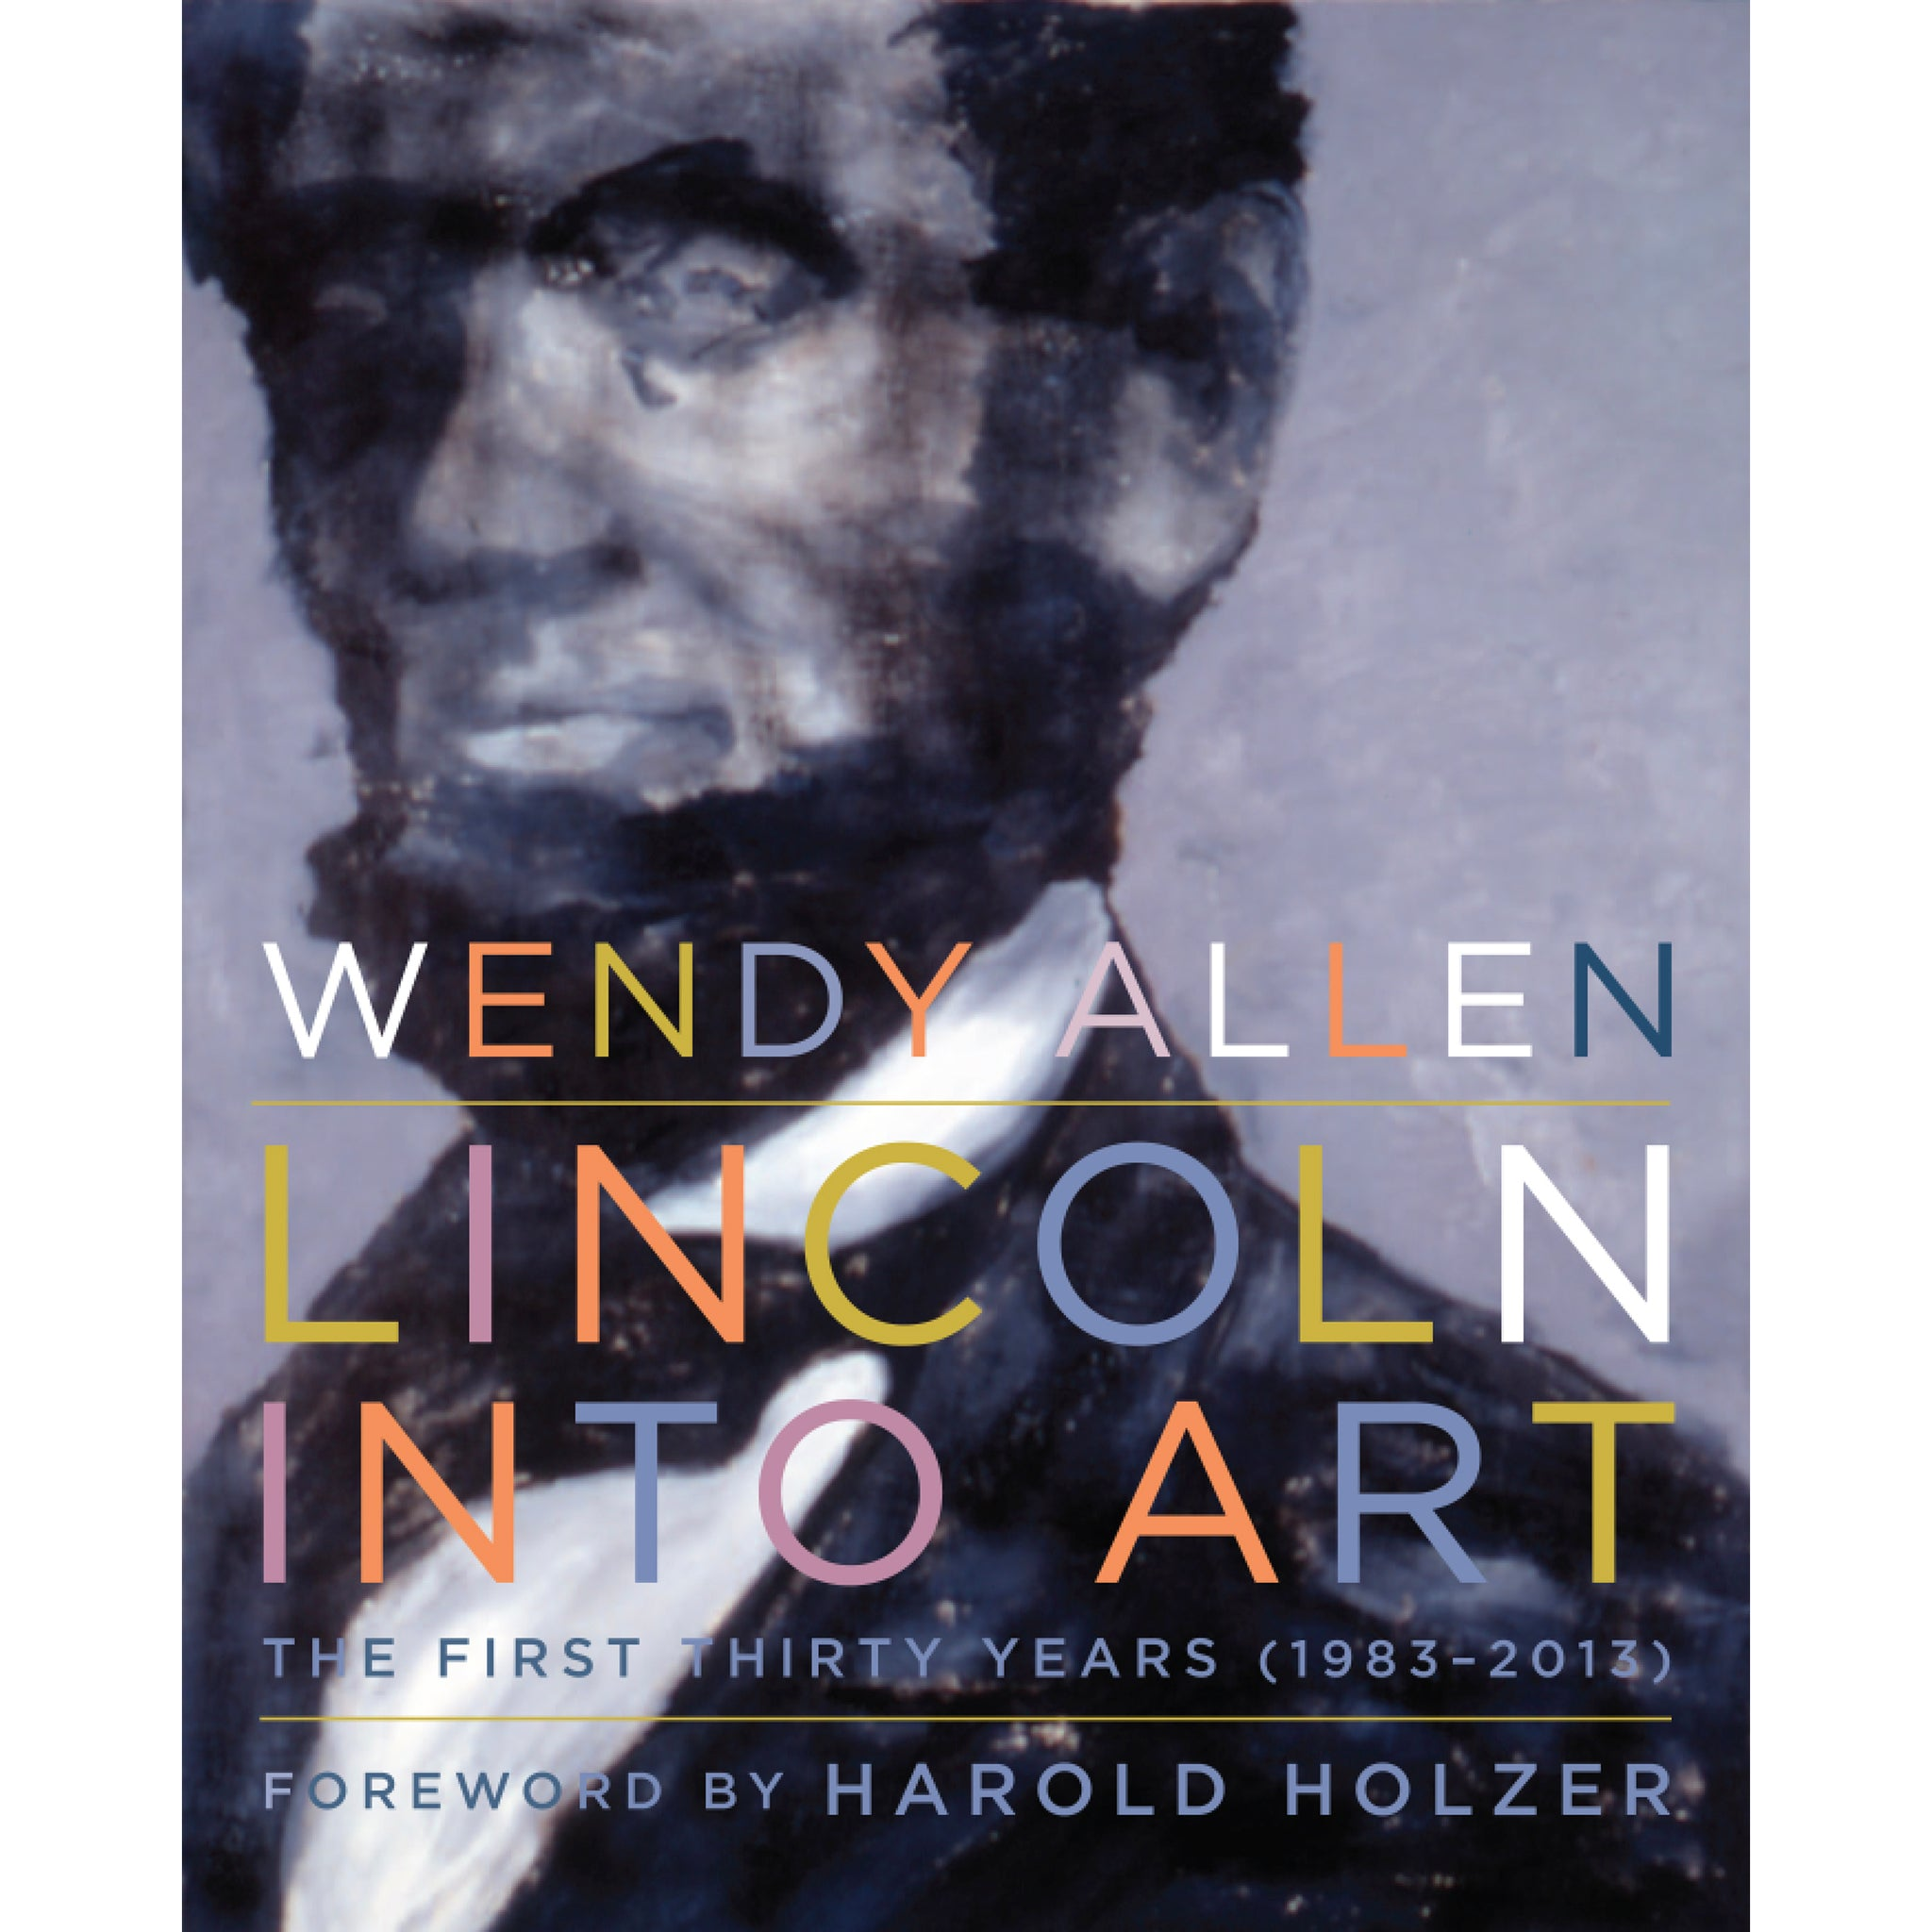 Lincoln Into Art: The First Thirty Years by Wendy Allen